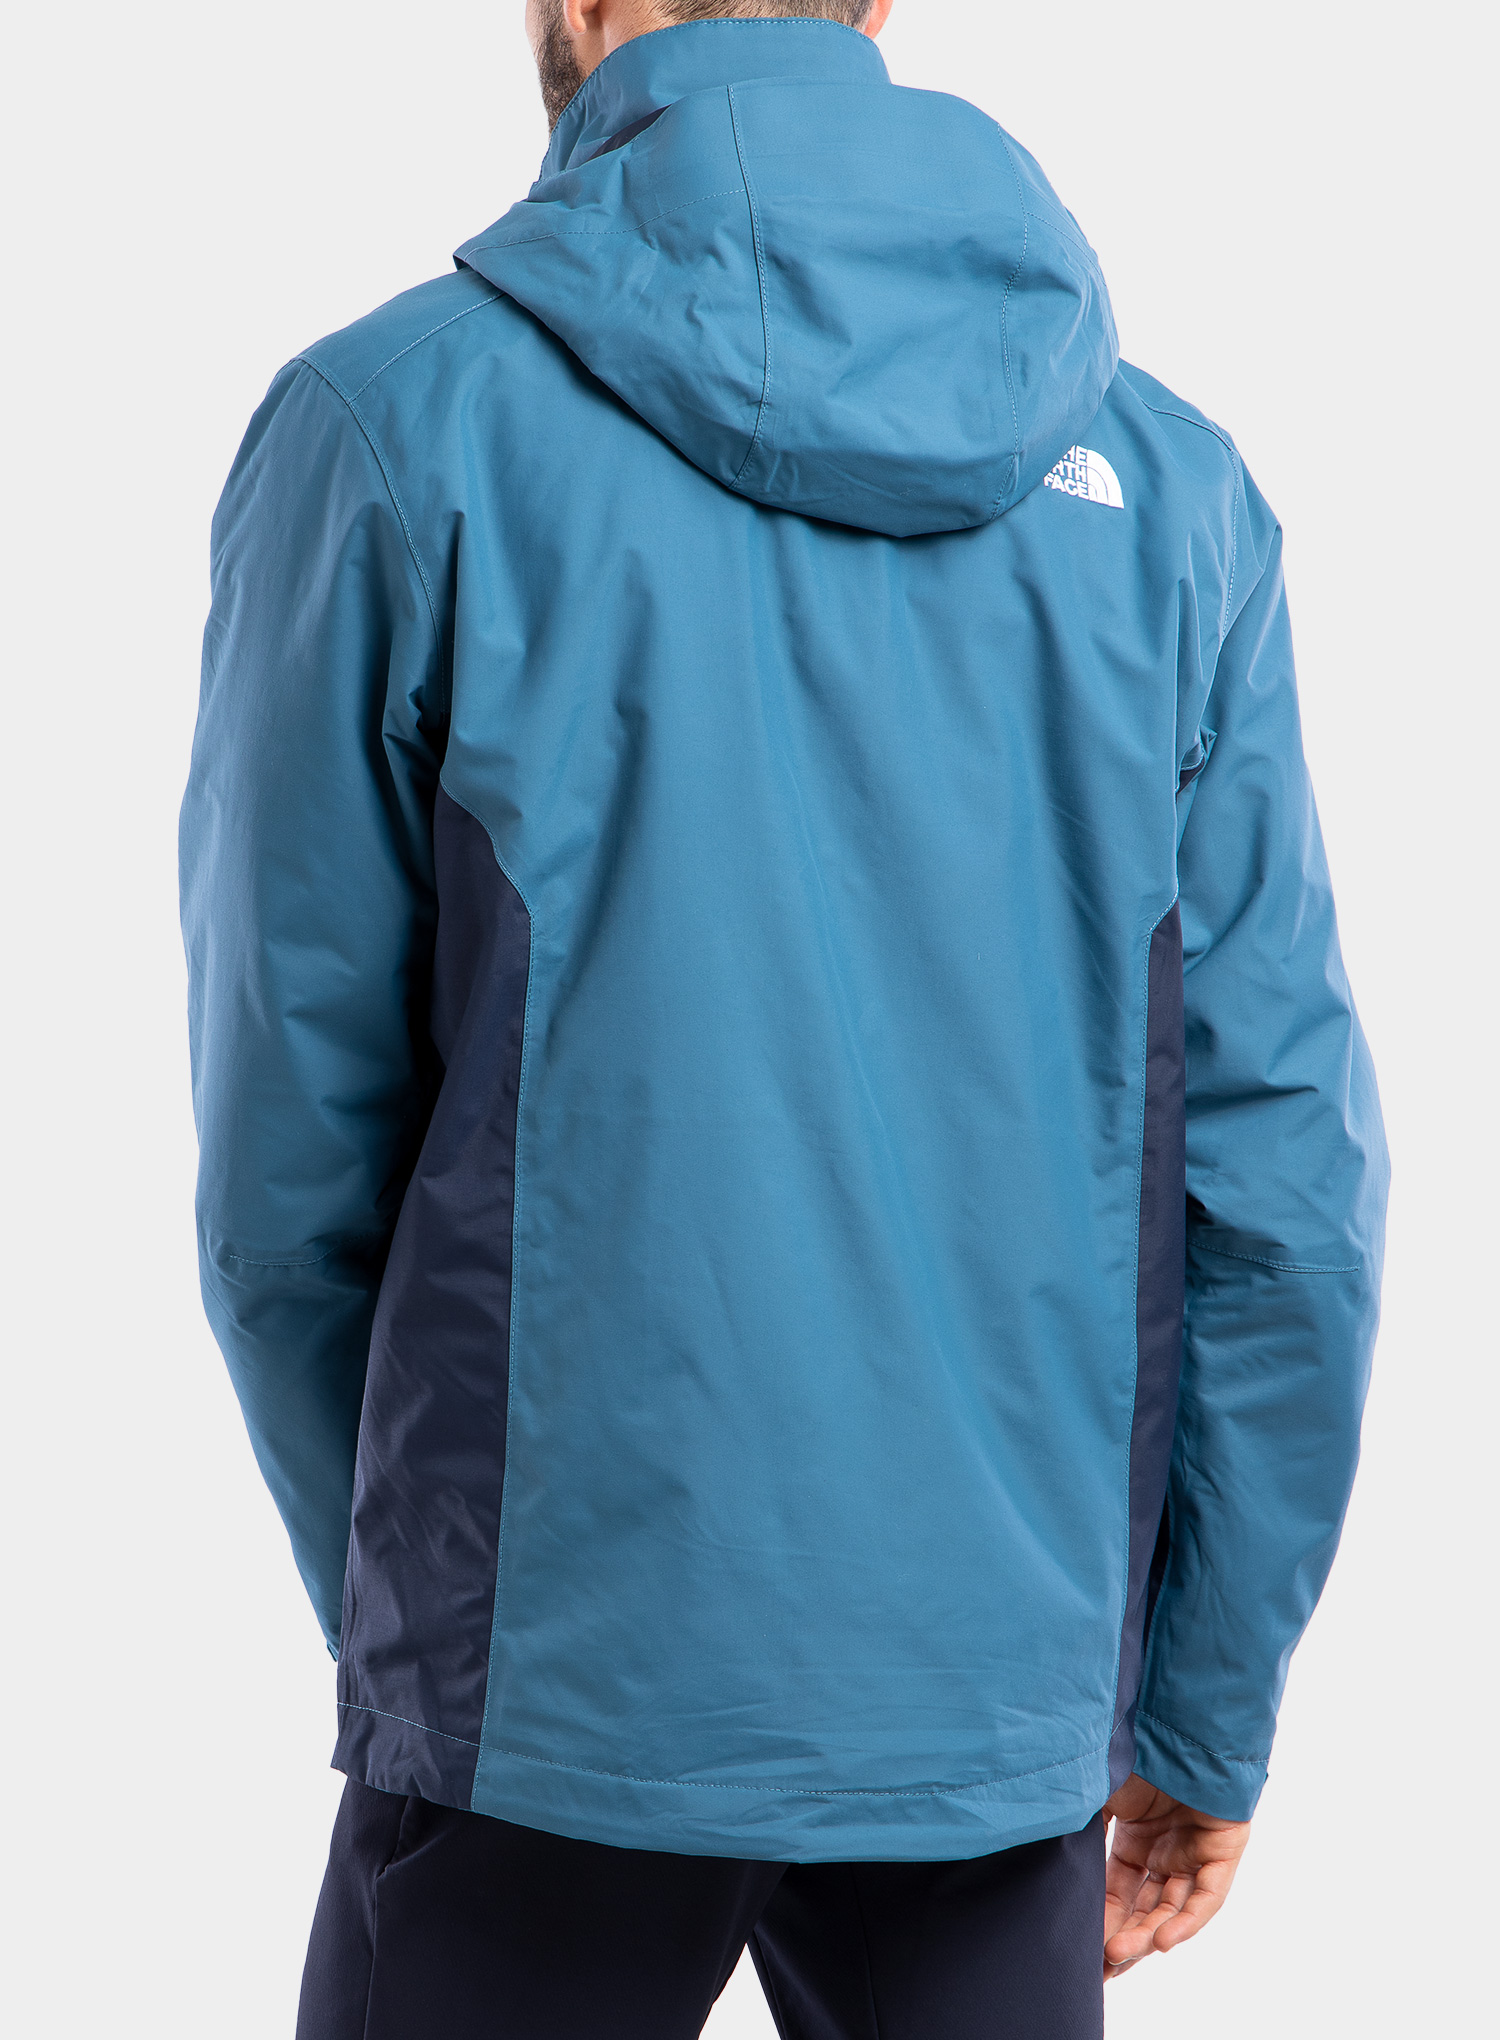 Kurtka The North Face Evolution II Triclimate - blue/navy - zdjęcie nr. 3